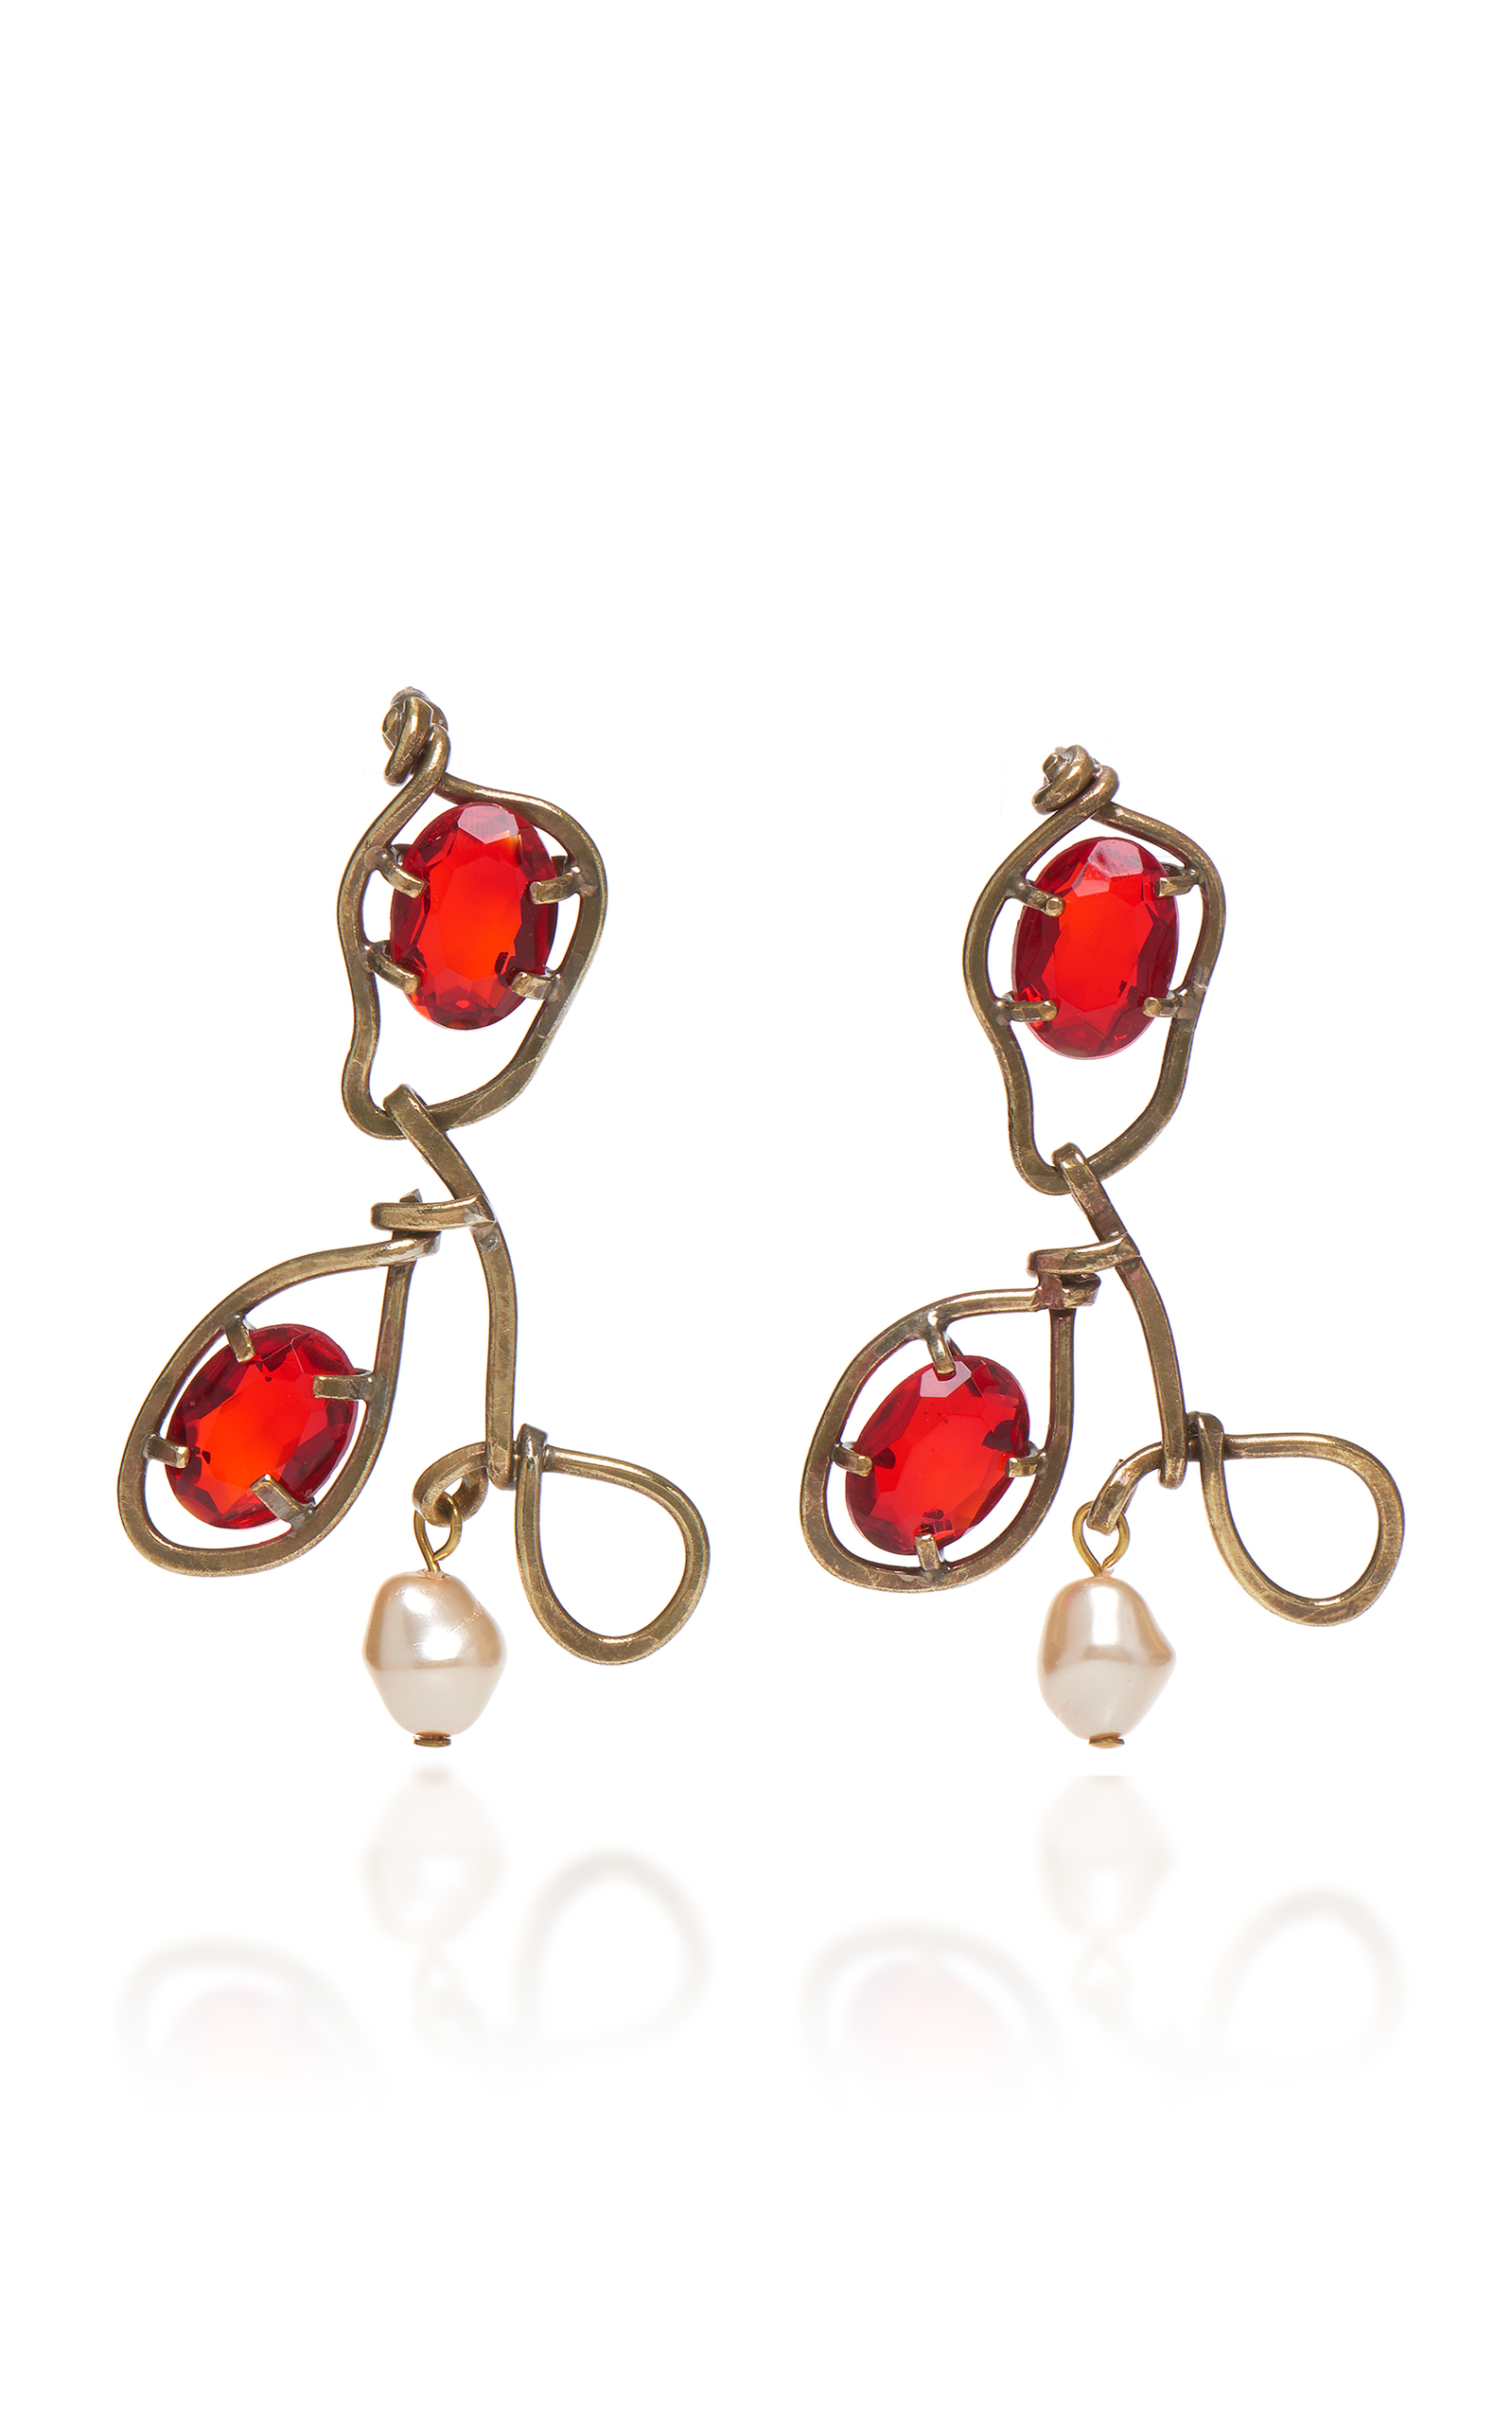 Earrings with Glass and Pearls Marni MH8OVSWH7